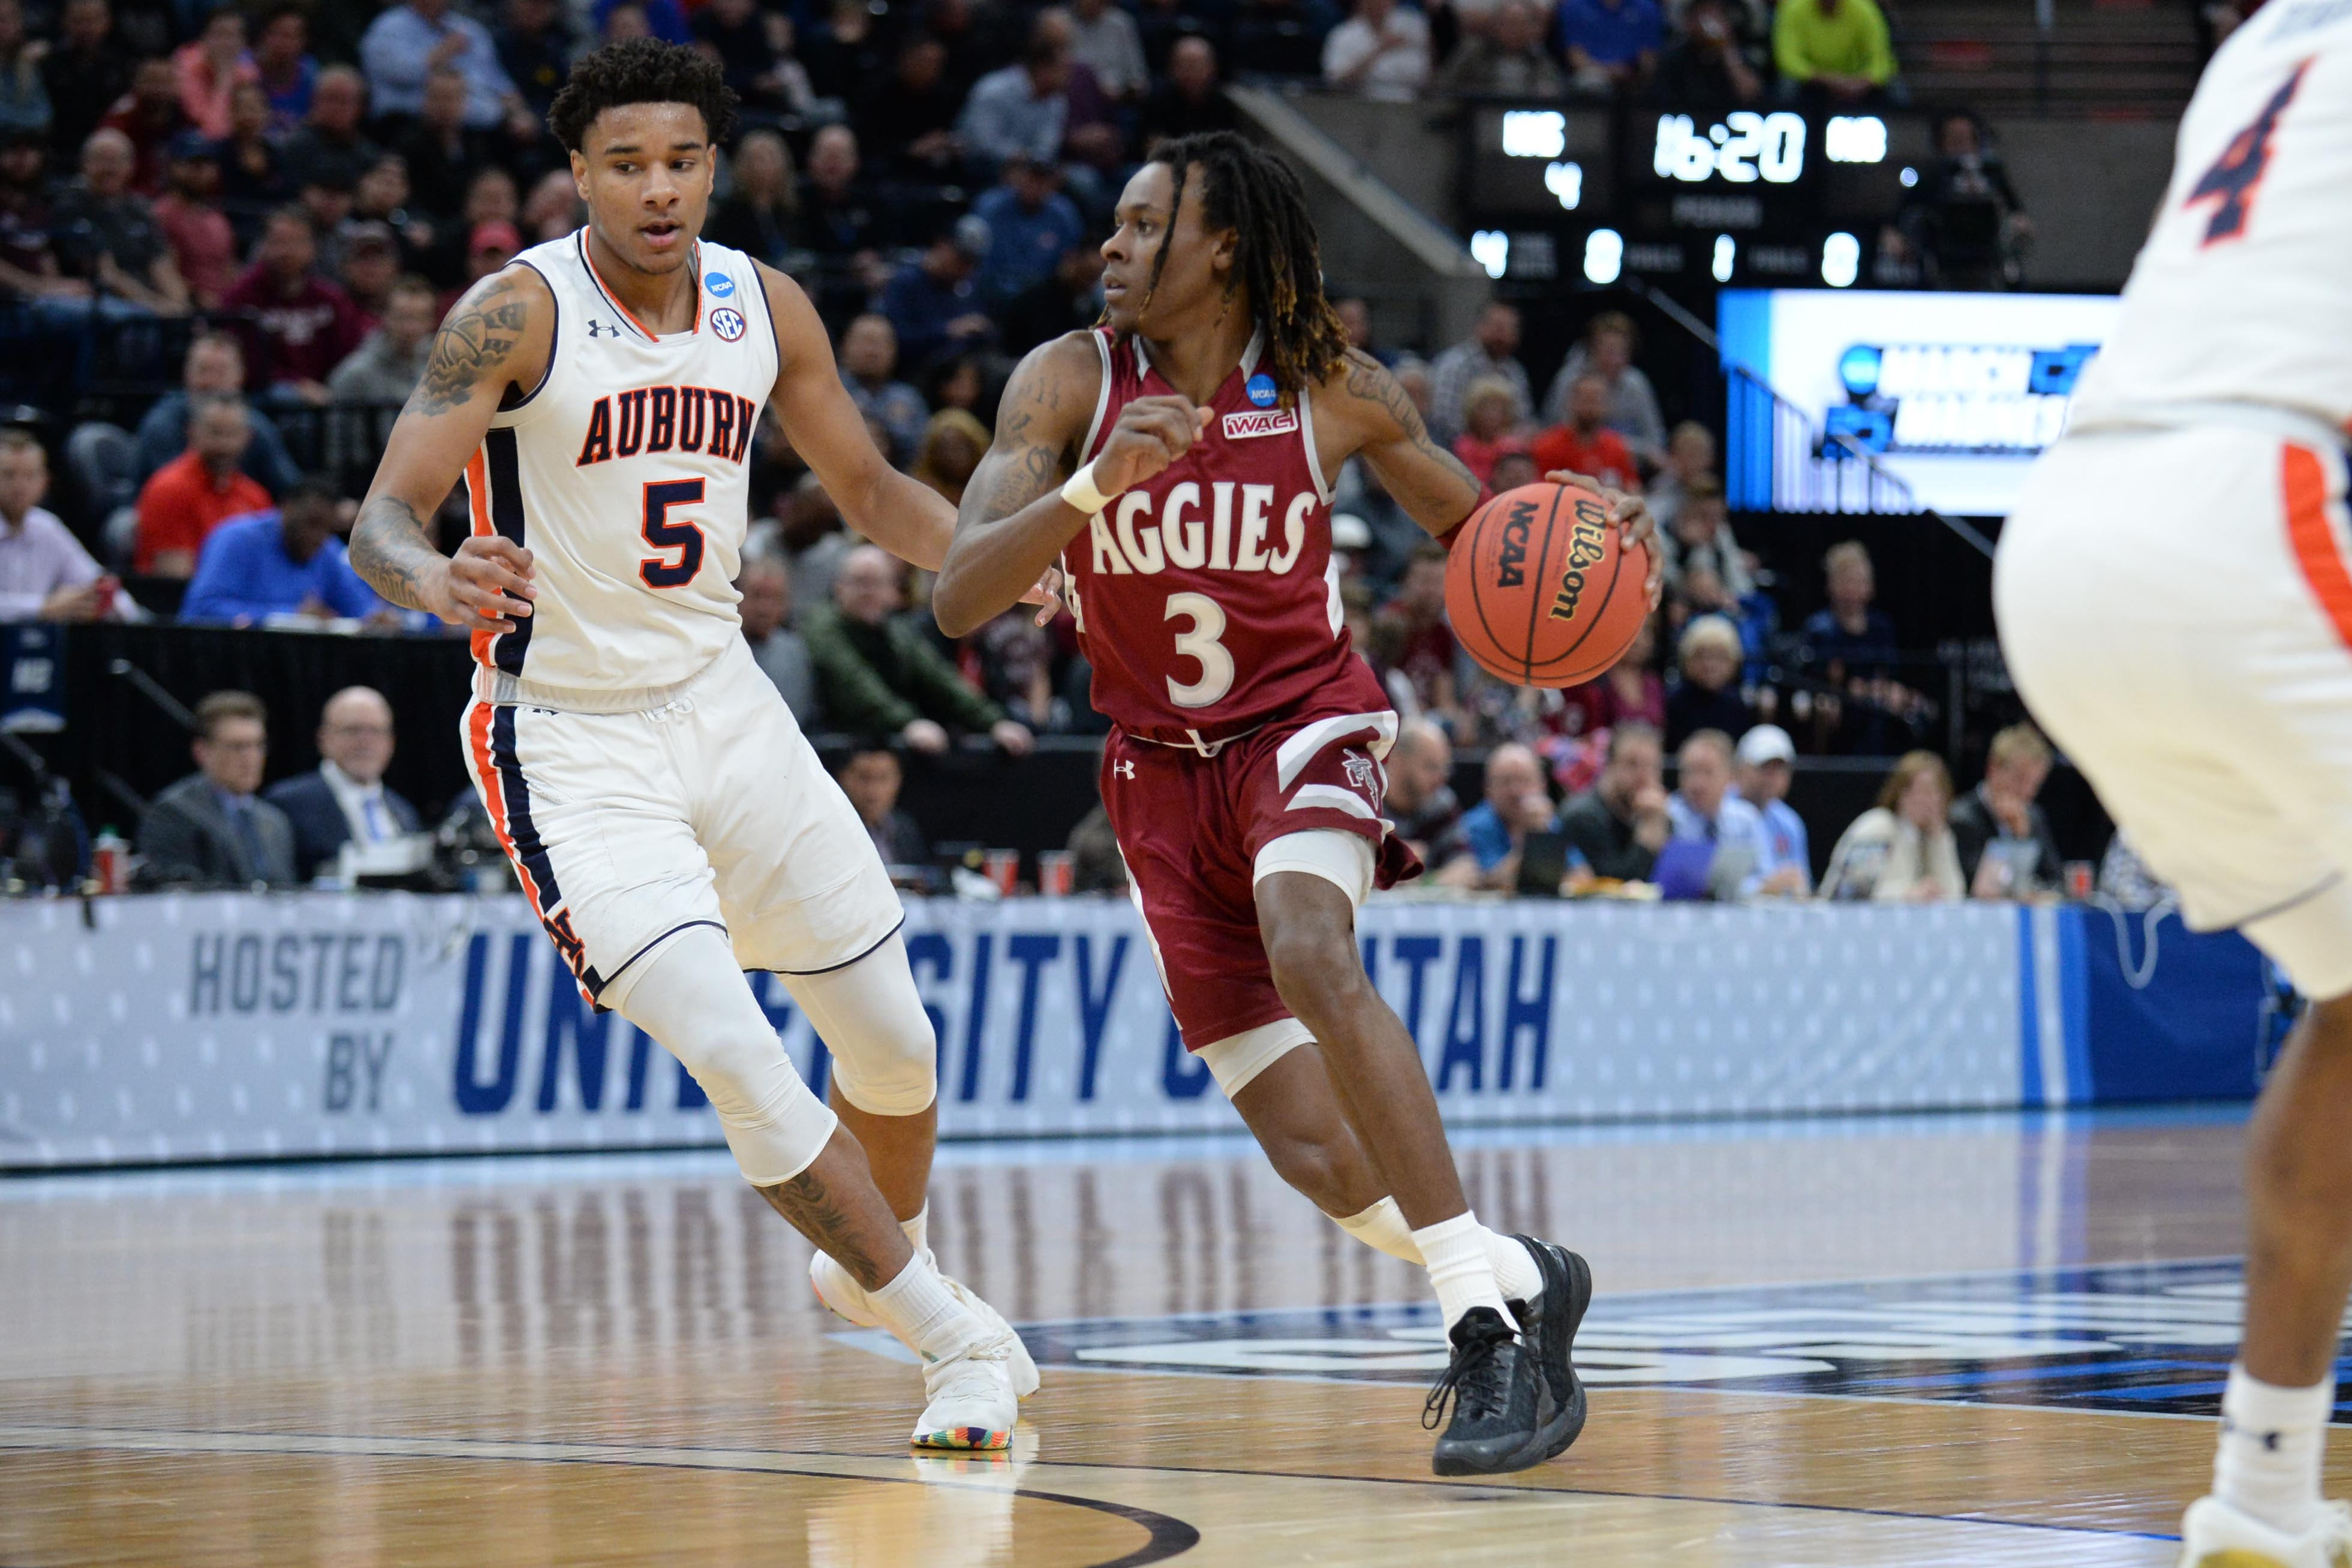 NCAA tournament: New Mexico State's upset bid falls just short against No. 5 seed Auburn